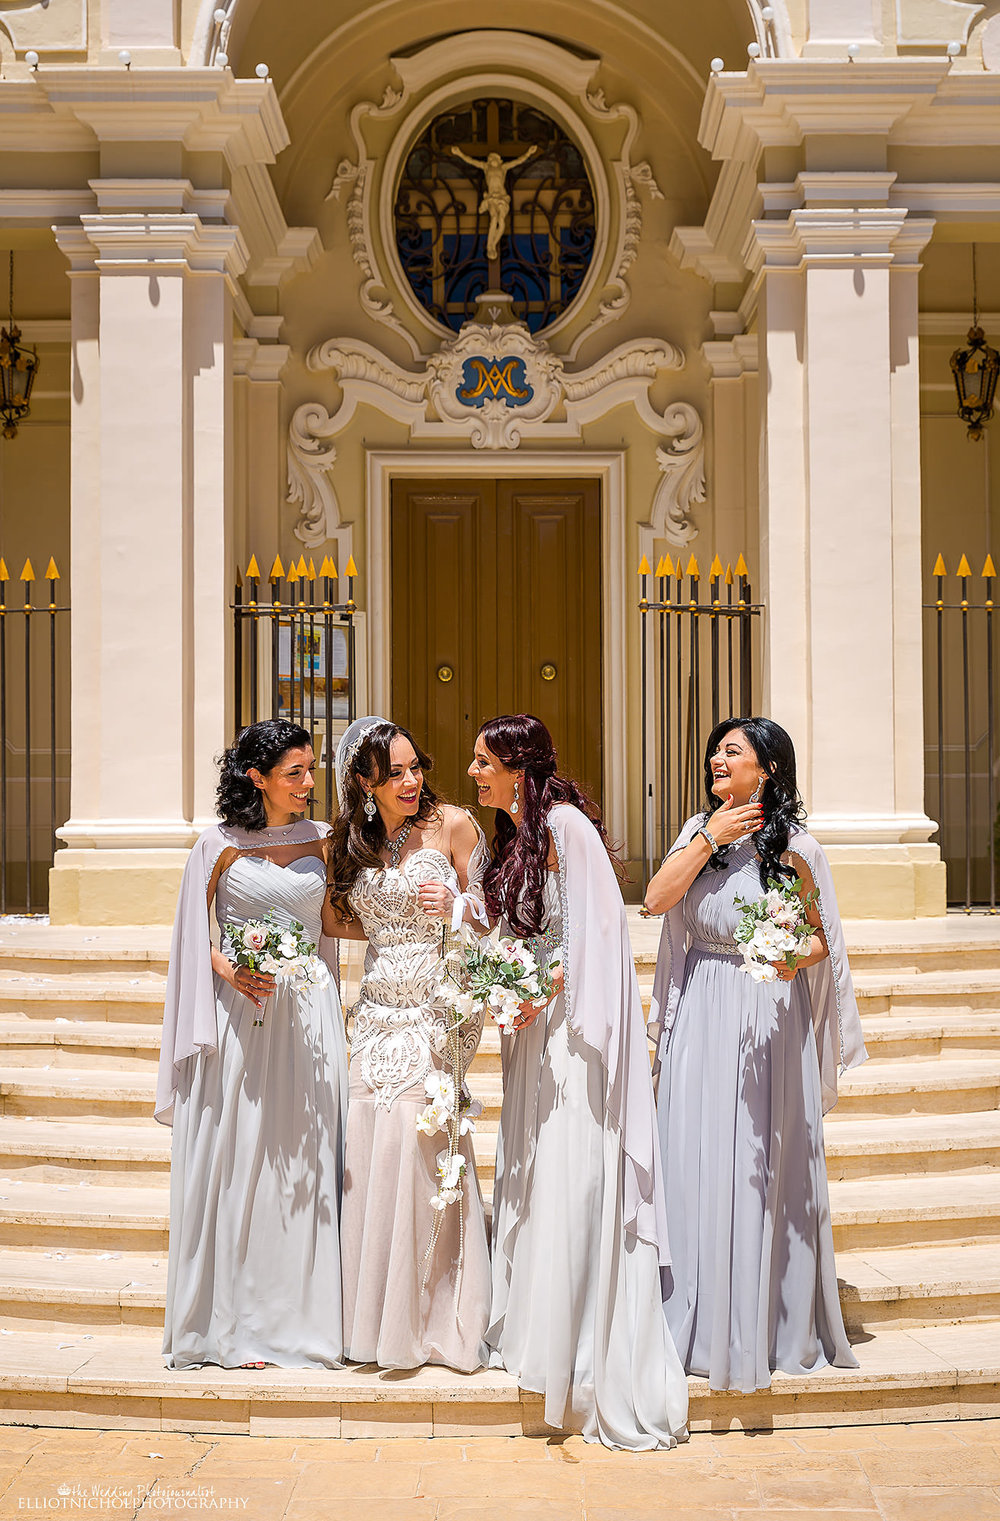 bride-bridesmaids-natural-photo-photography-church-wedding